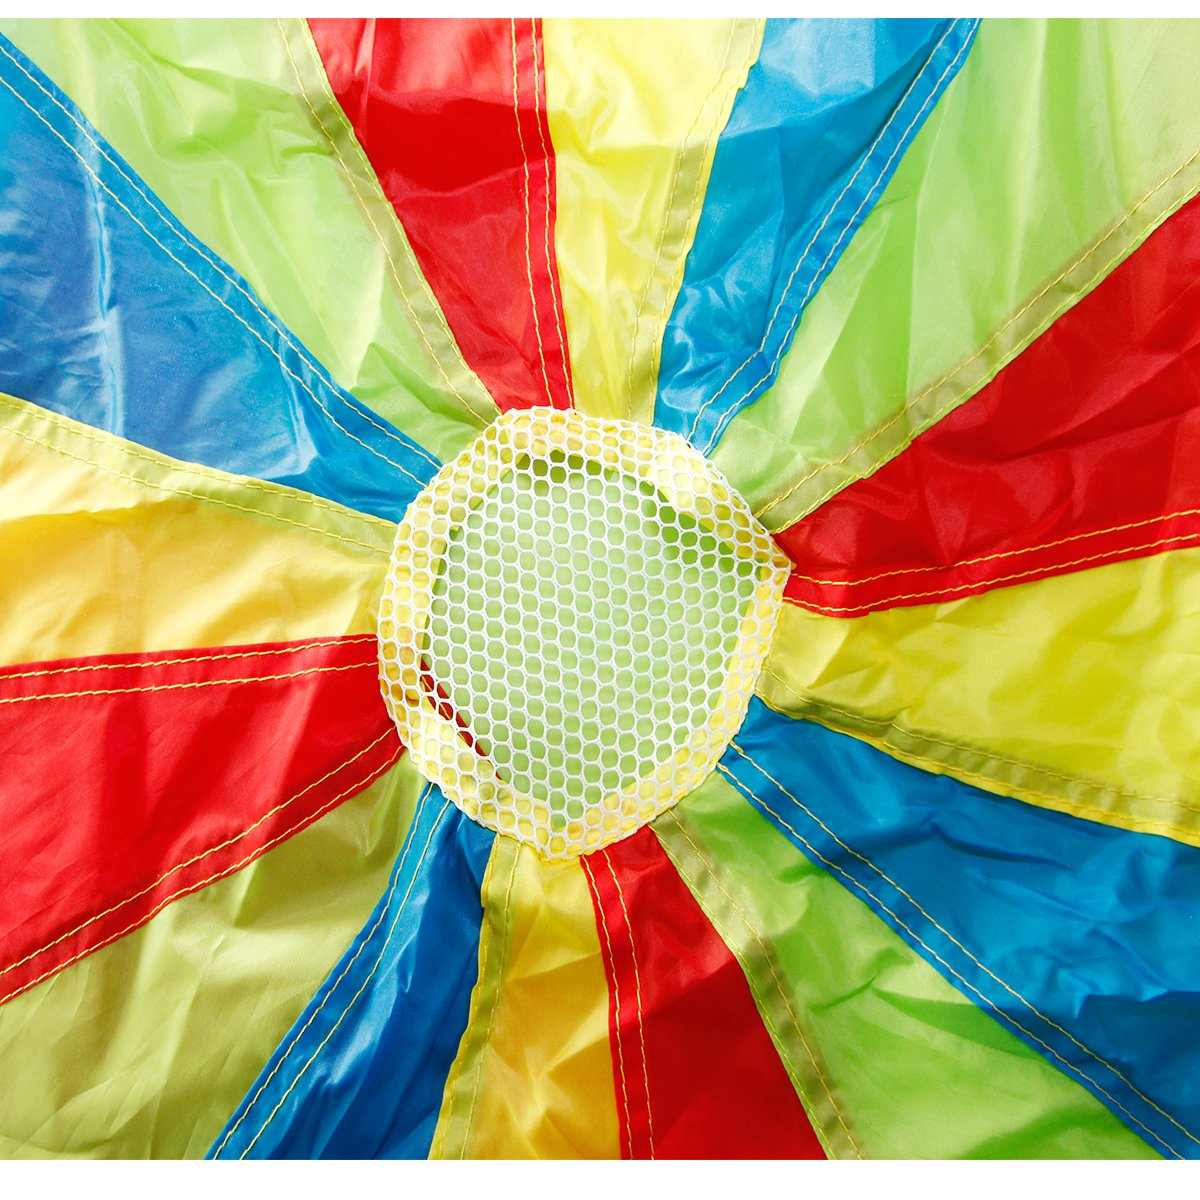 Sonyabecca Parachute, Play Parachute 20ft with 16 Handles for Kids Cooperation Group Play by Sonyabecca (Image #5)